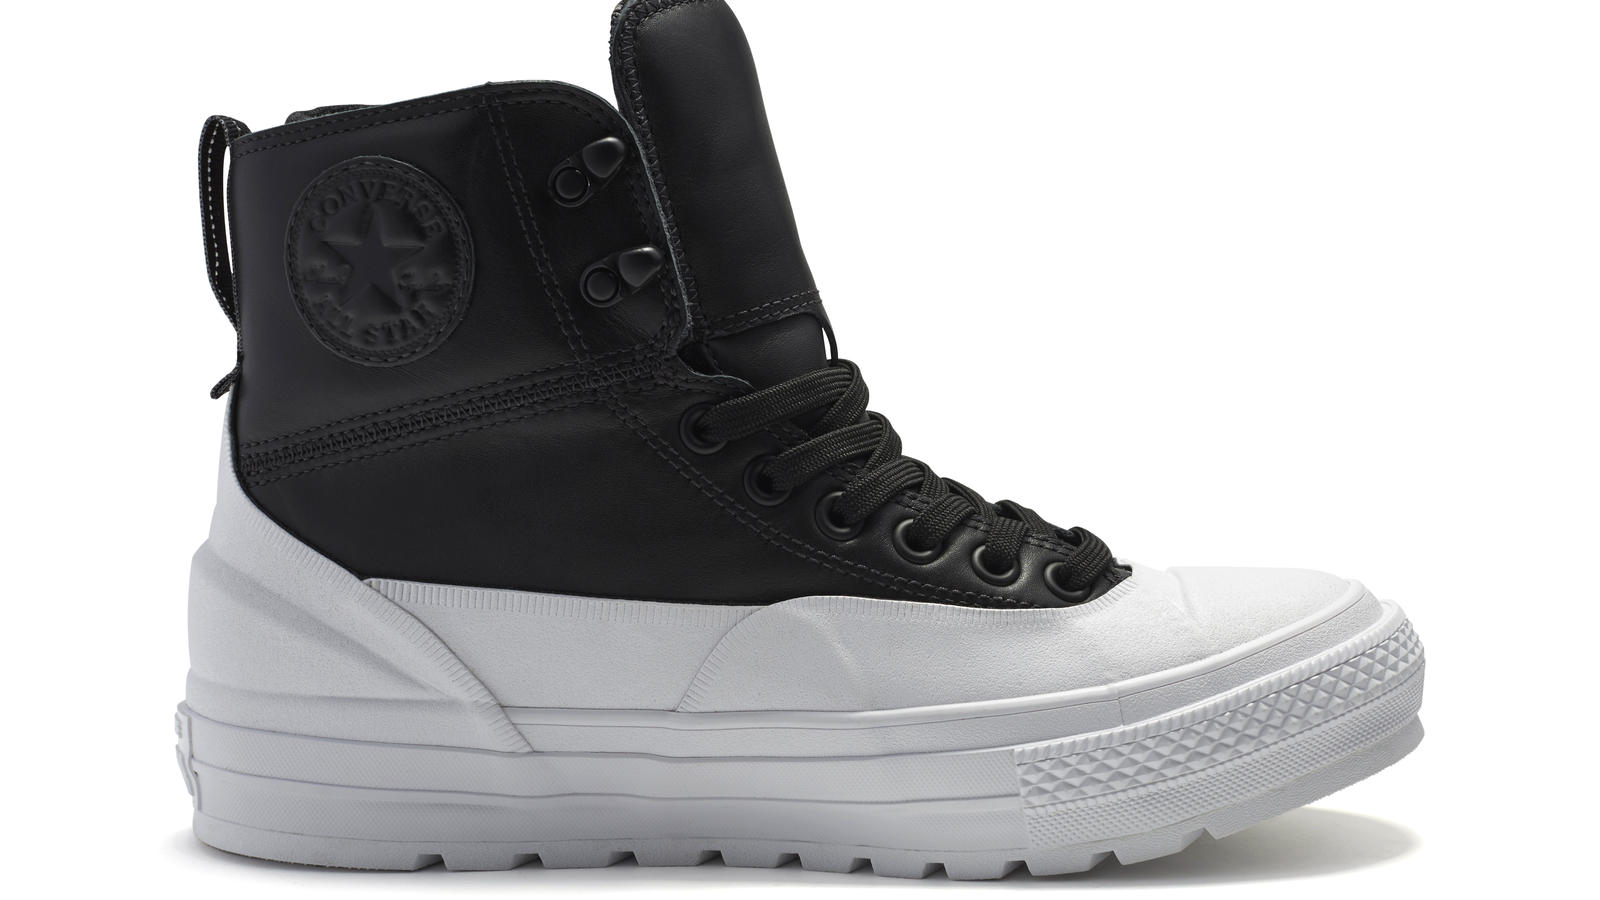 Converse Debuts New Counter Climate Boots Collection